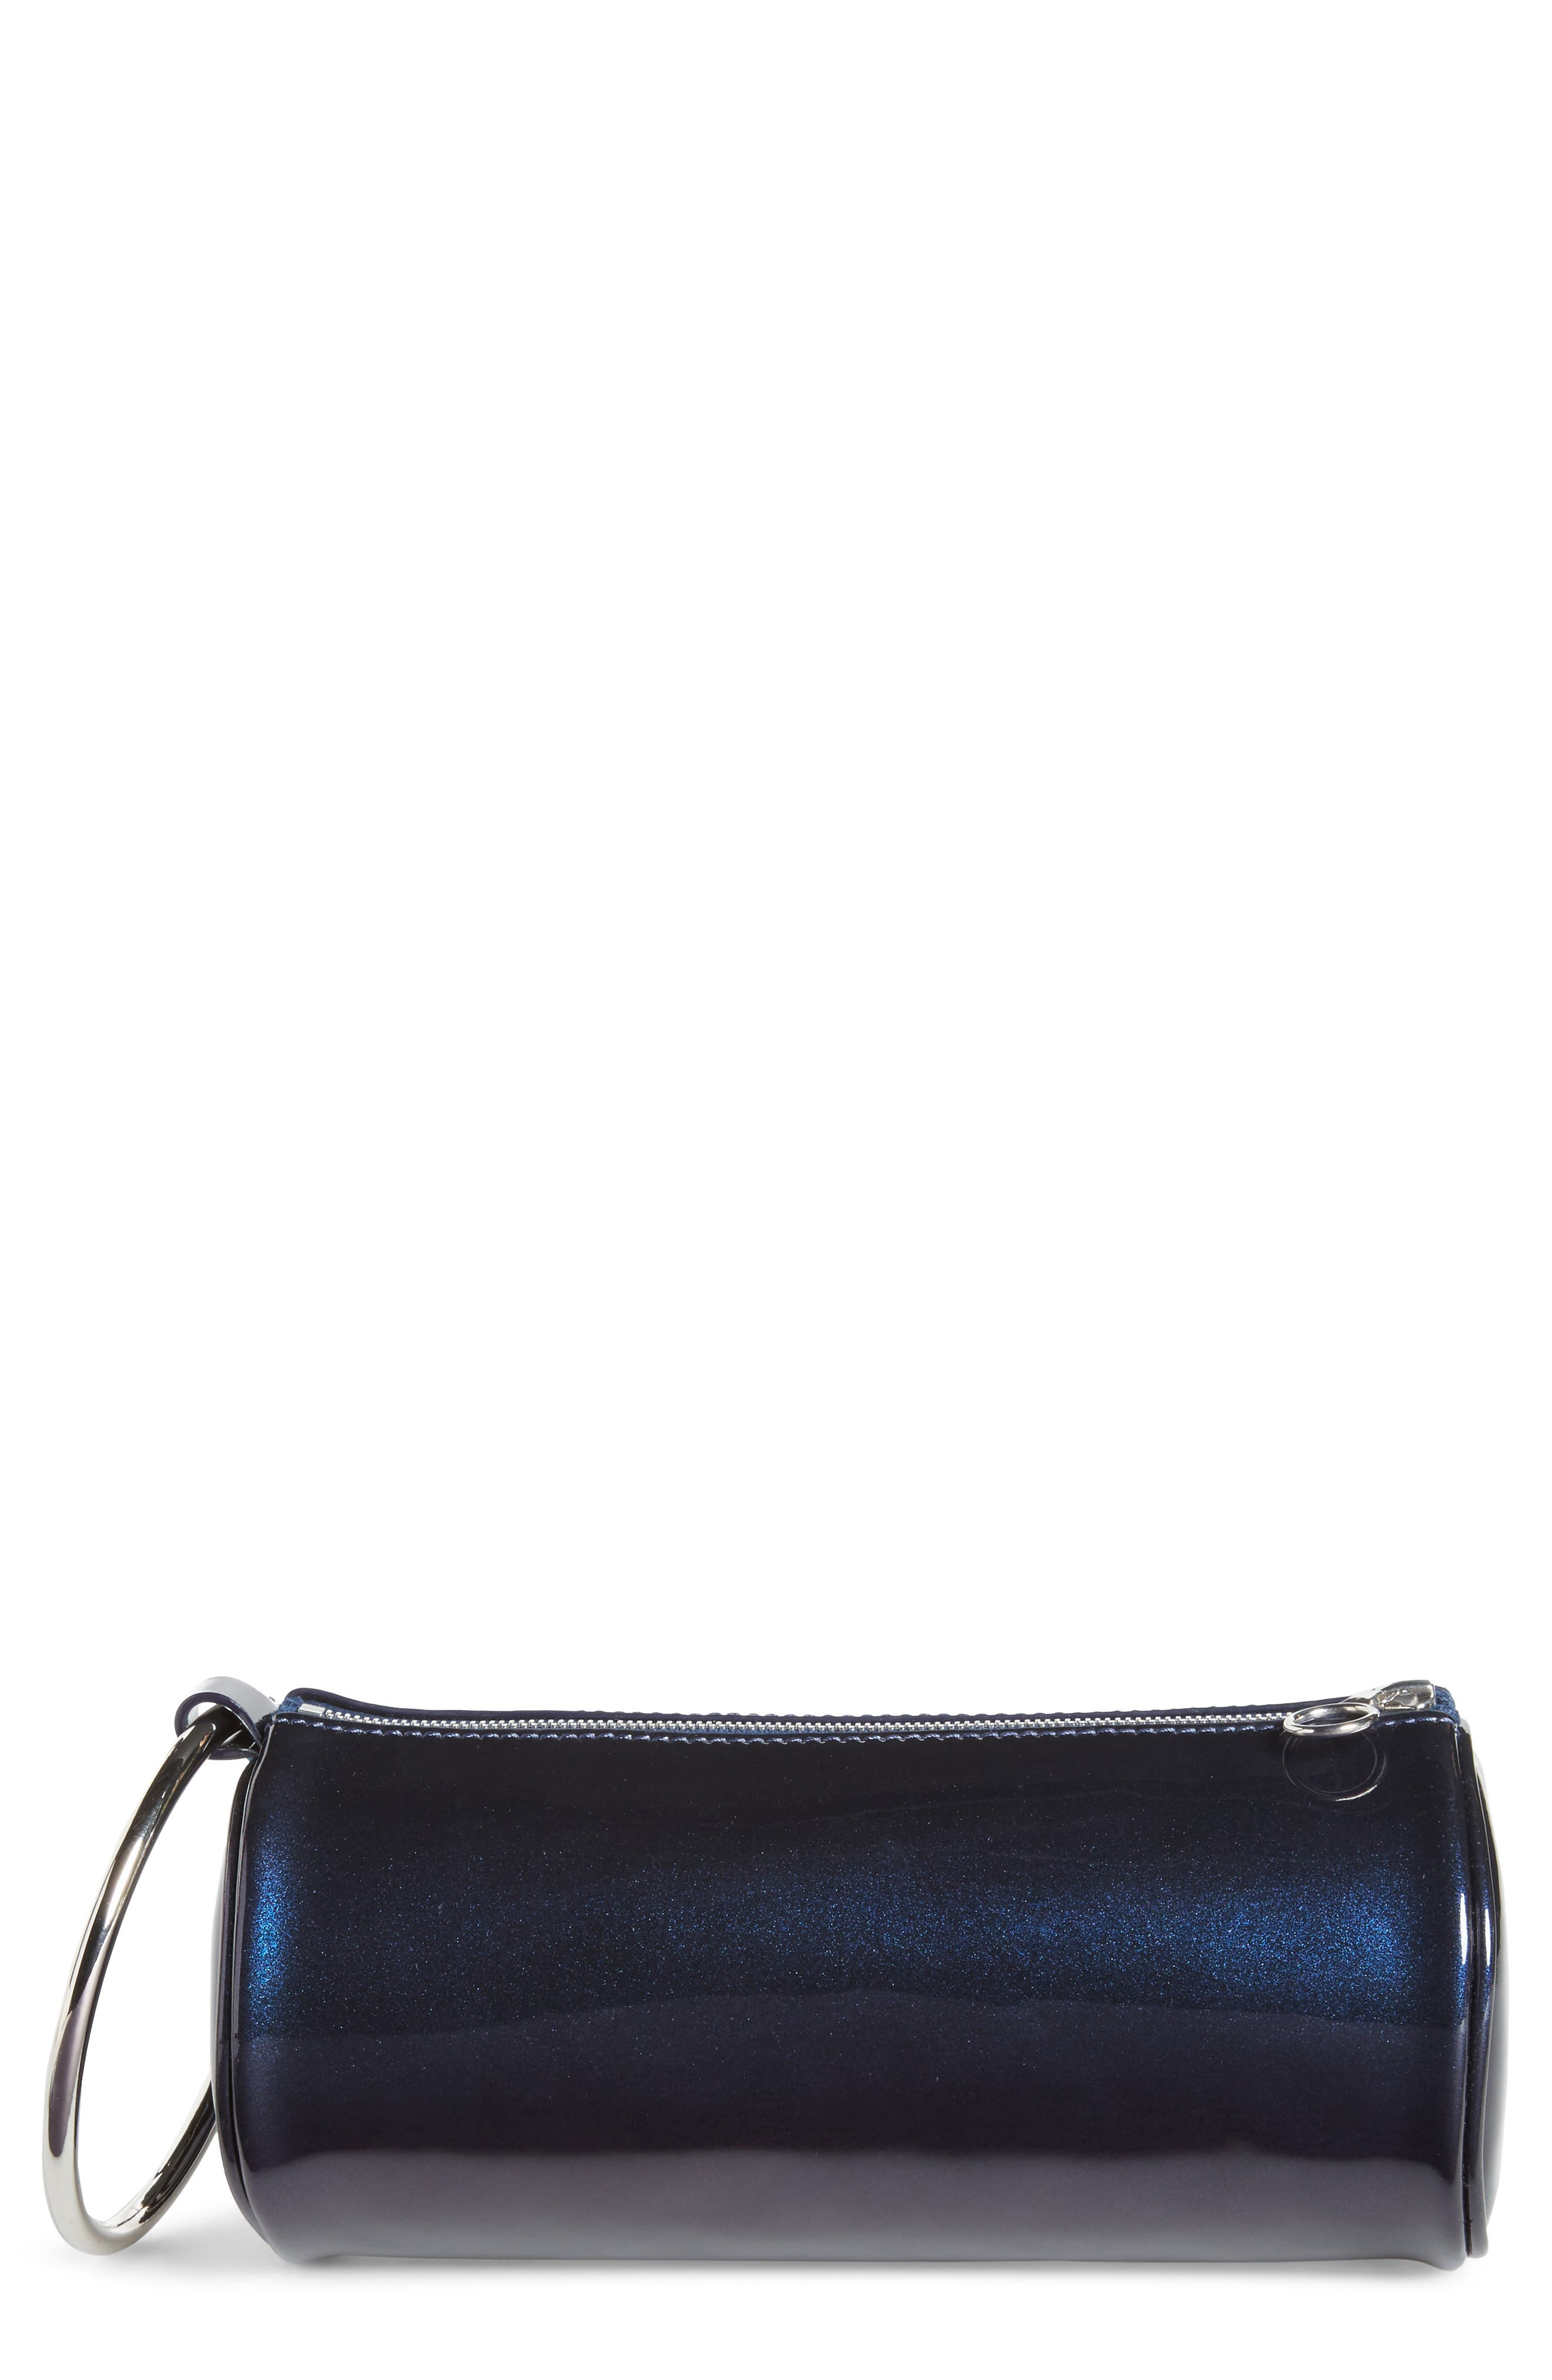 Iridescent Leather Duffel Wristlet Clutch,                         Main,                         color, Galaxy Navy